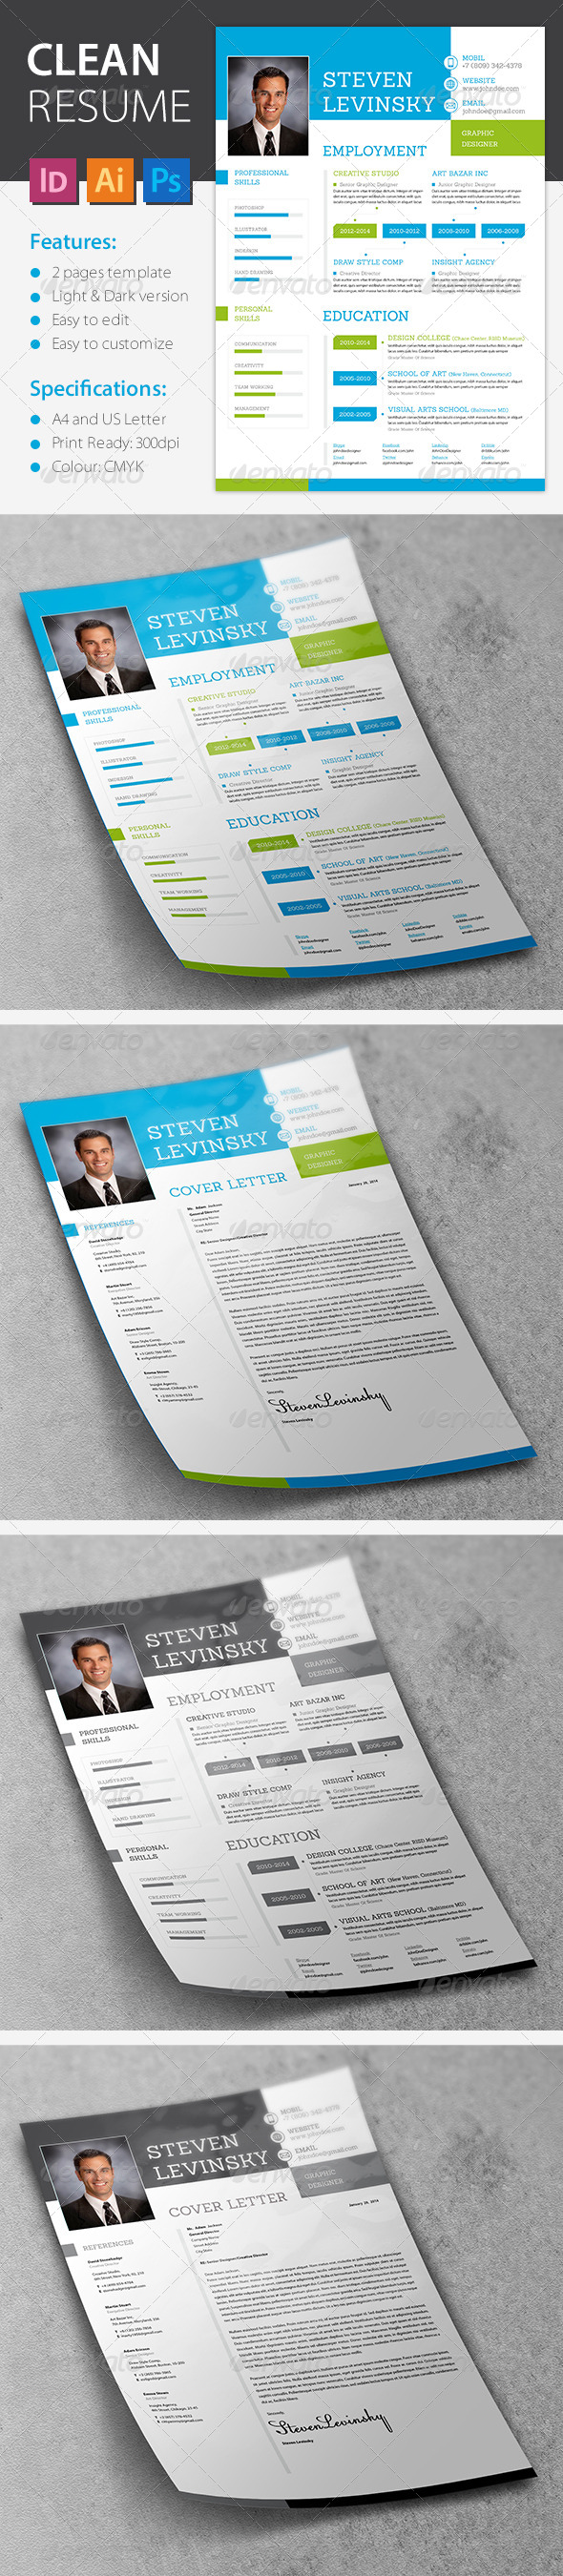 GraphicRiver Clean&Fresh Resume 6750118